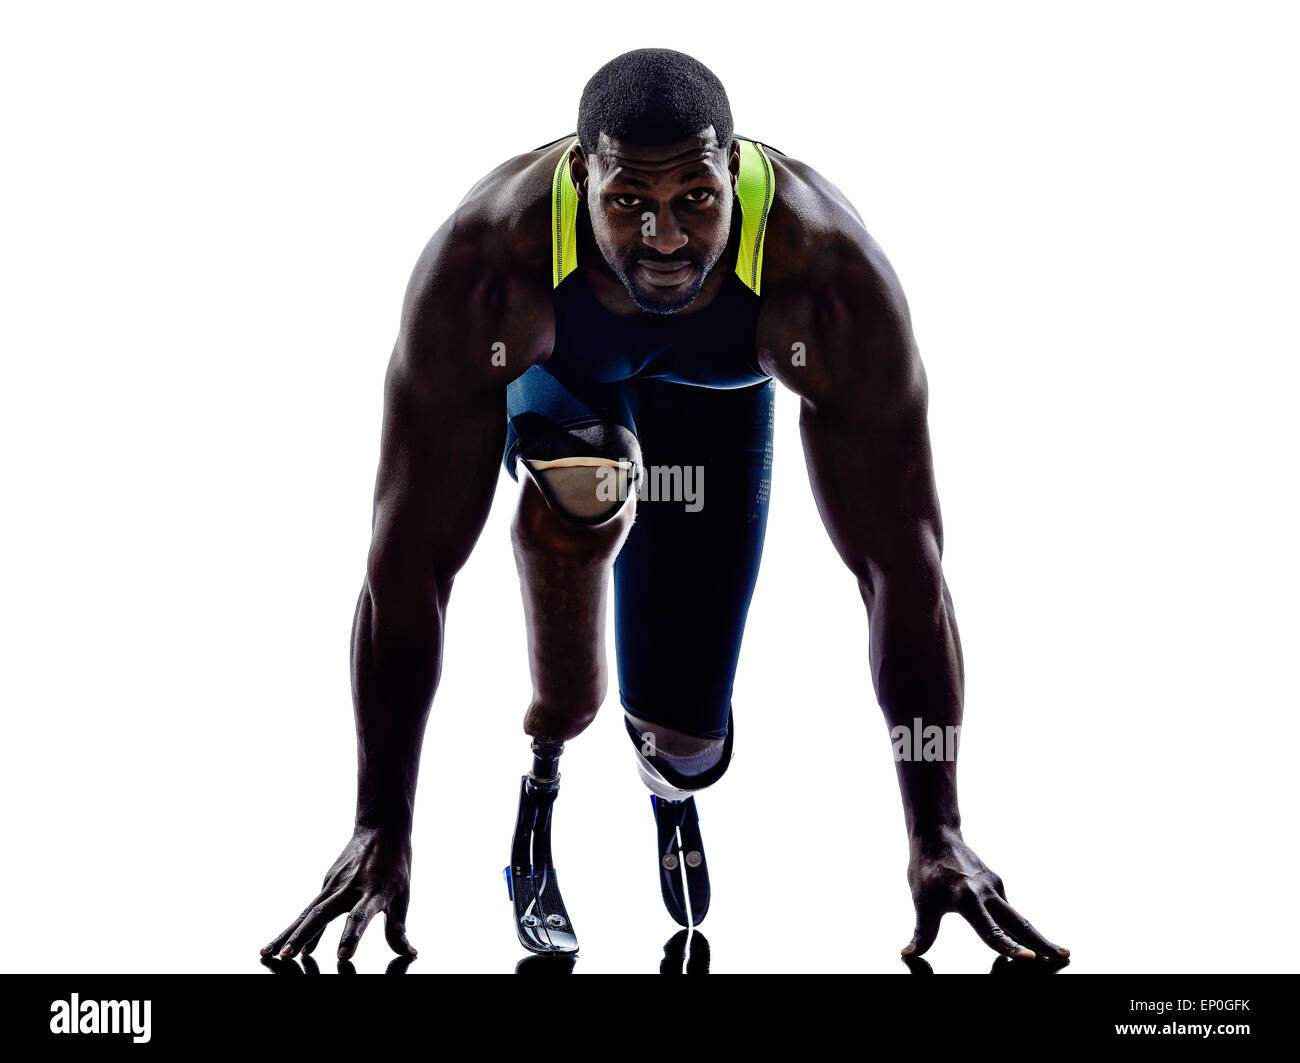 one muscular handicapped man runners sprinters with legs prosthesis in silhouette on white background - Stock Image